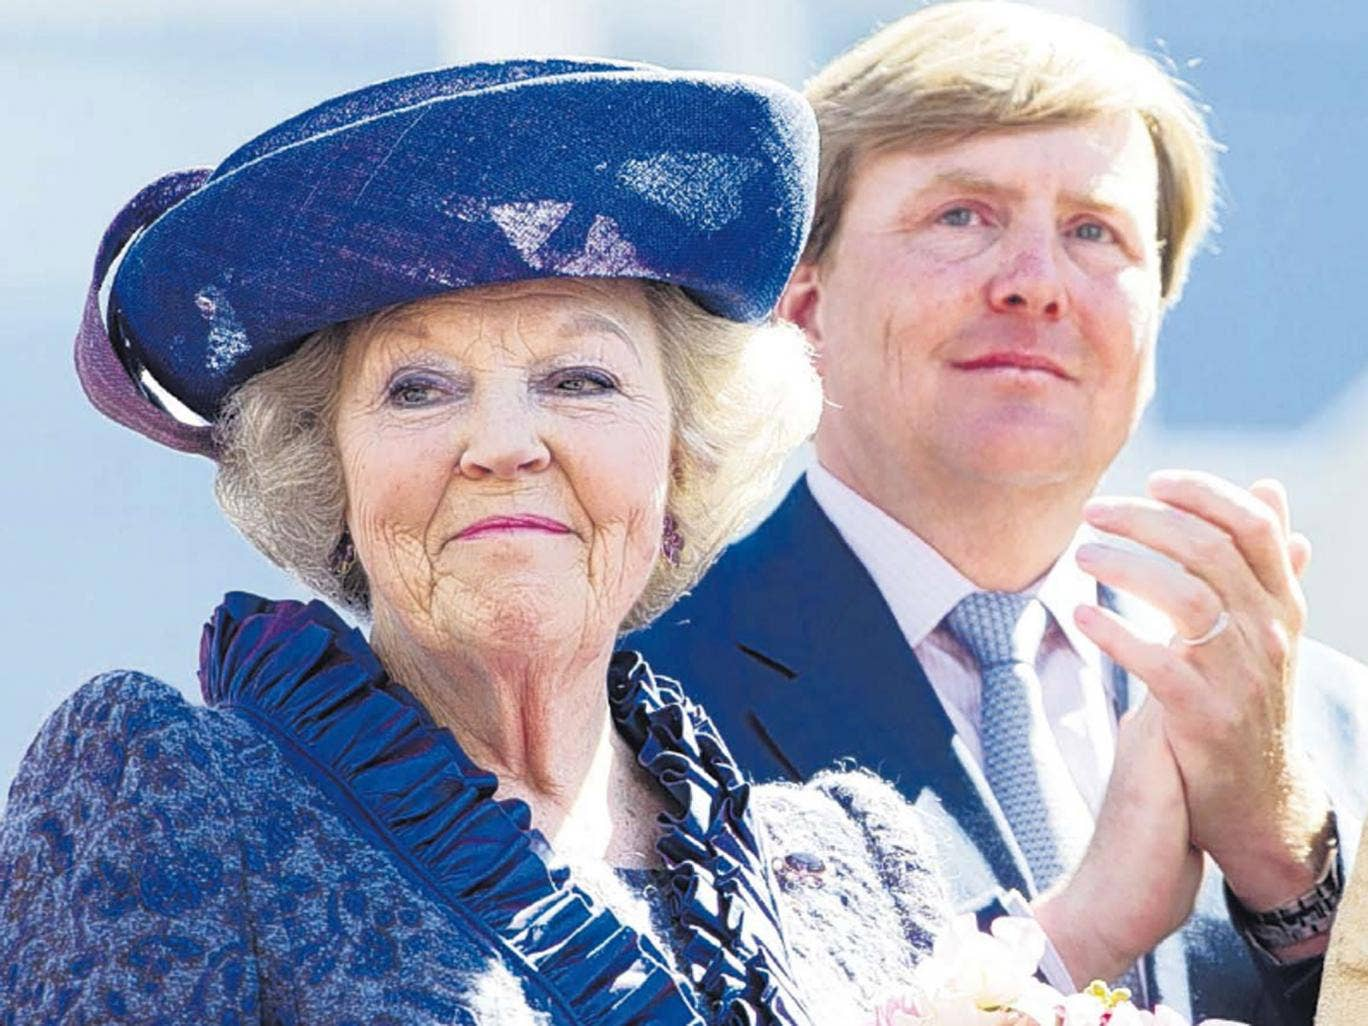 Queen Beatrix will step down in April to allow her son, Prince Willem-Alexander, to become king